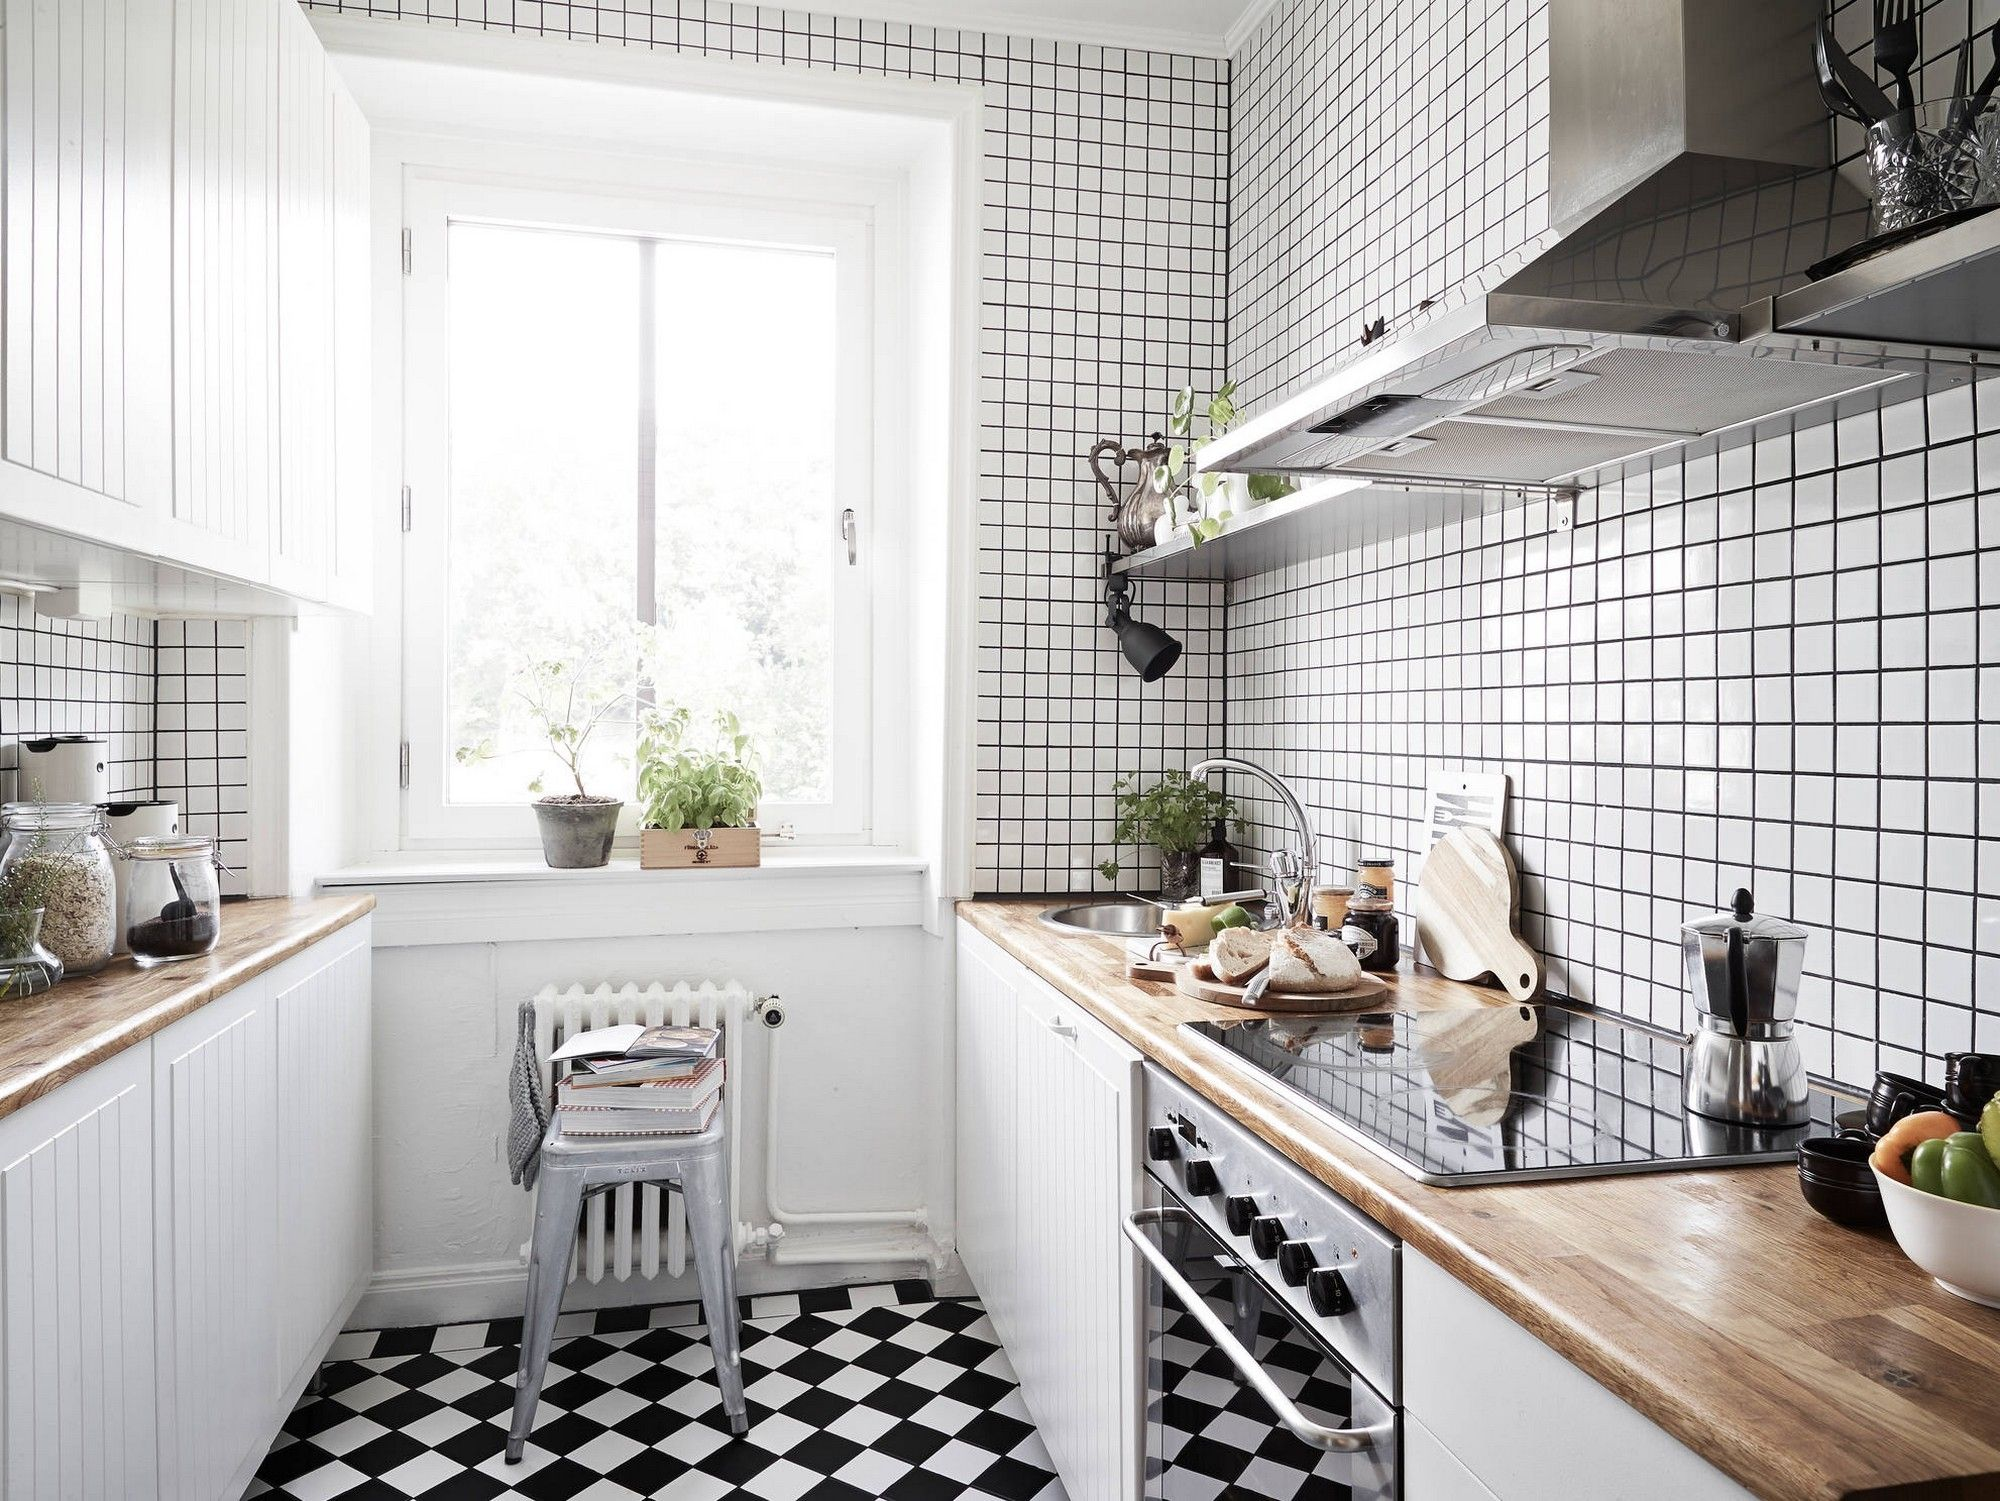 classic kitchen floor tiles black and white | 32nd: kitchen ...